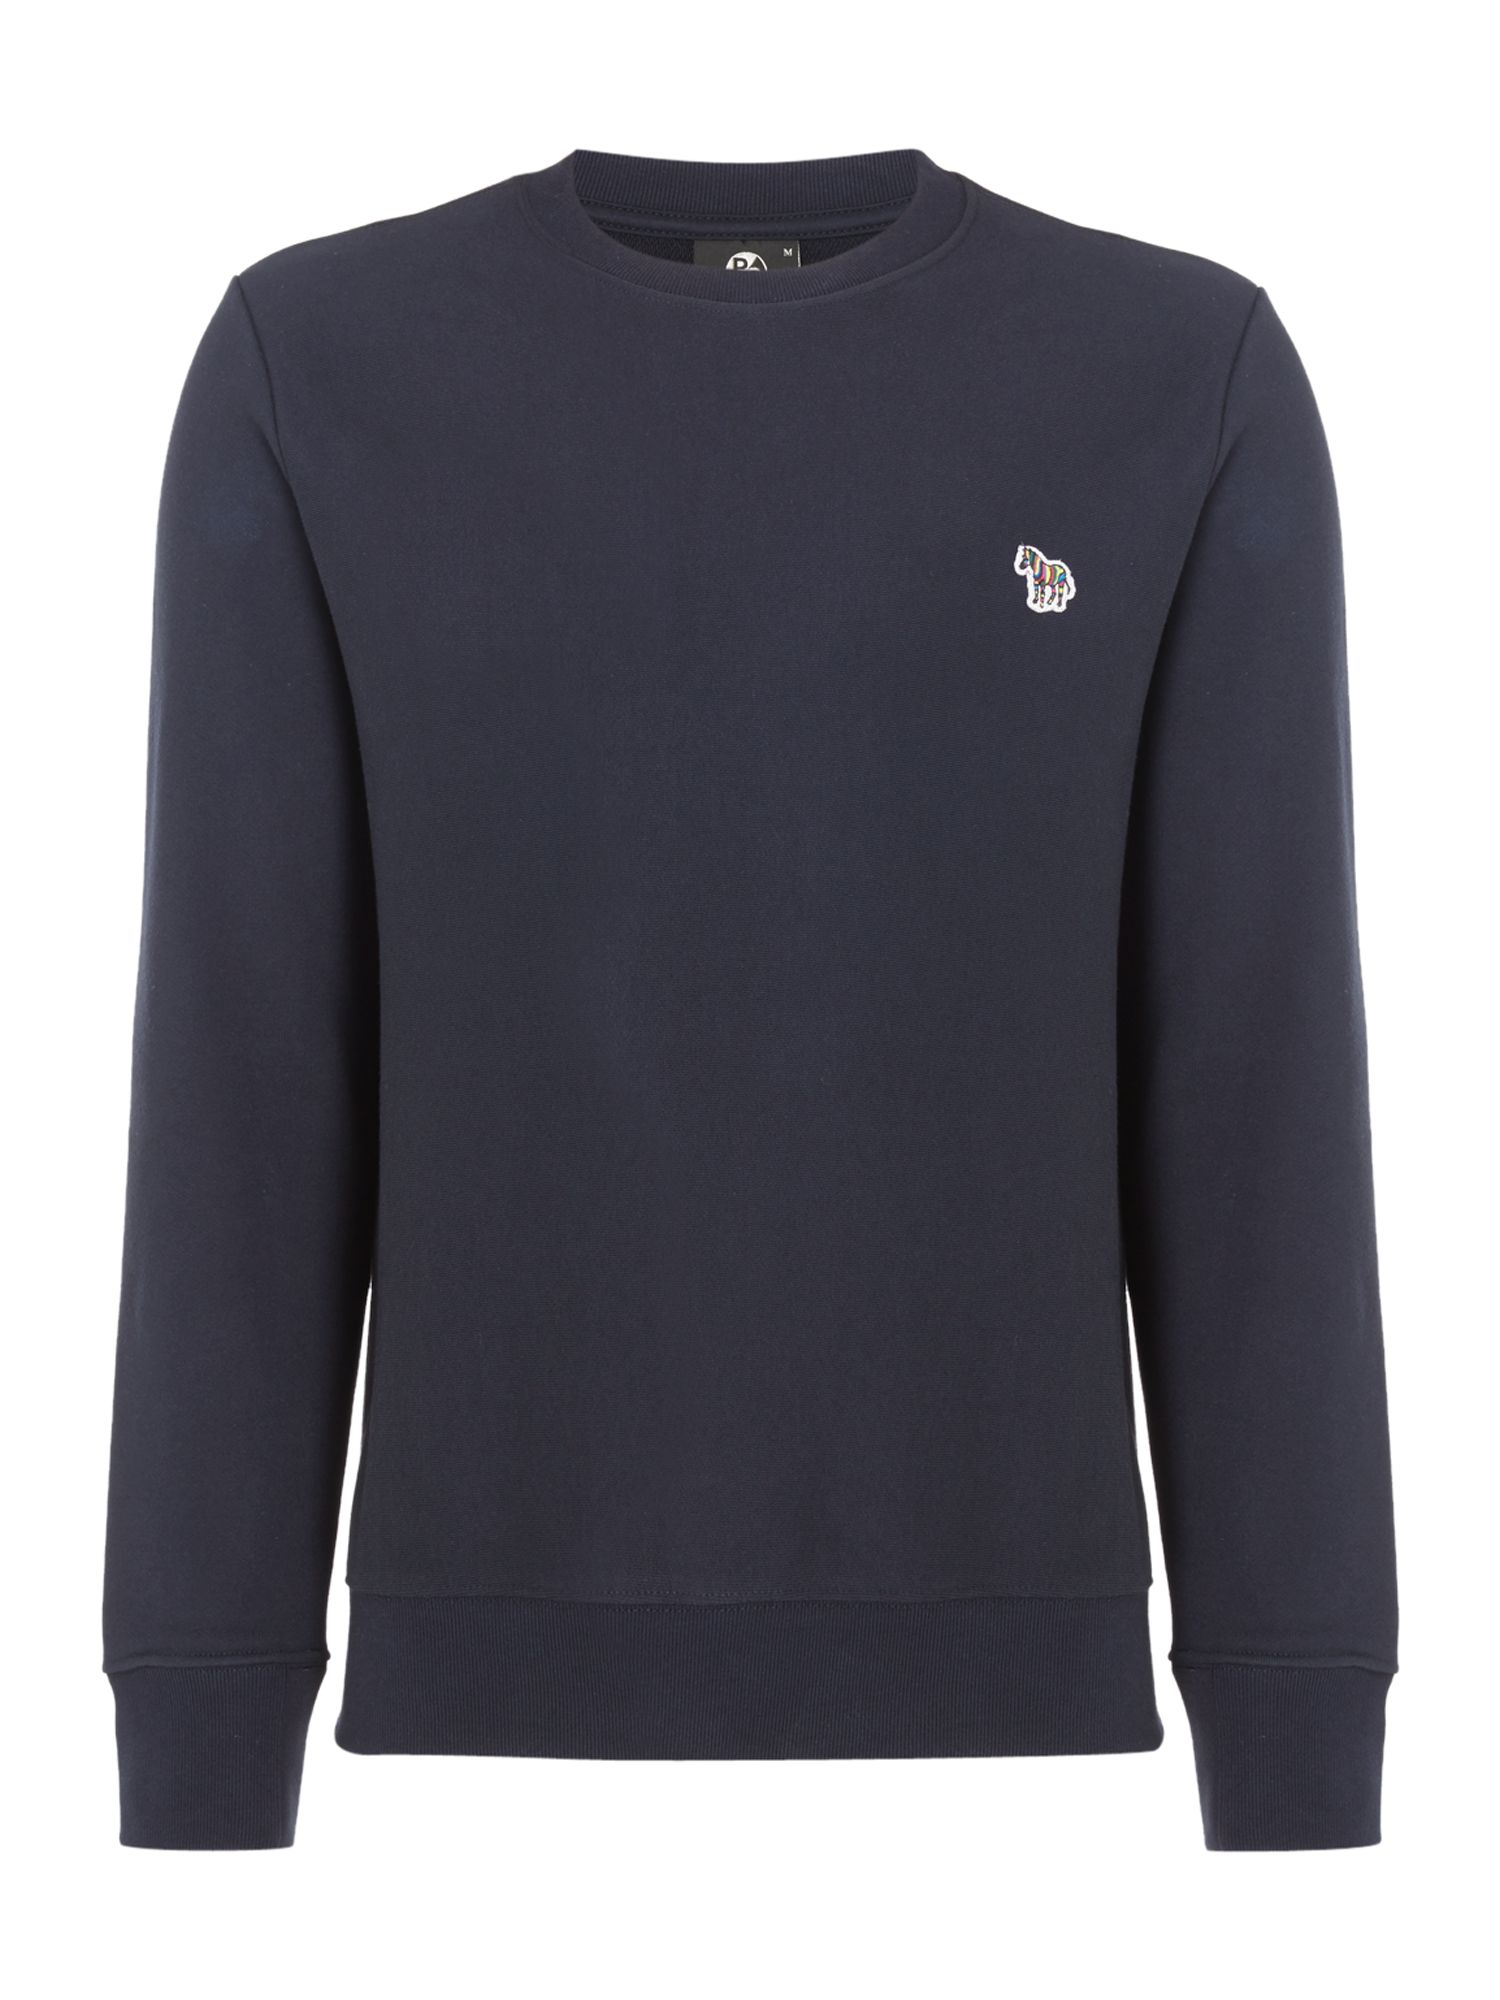 Men's PS By Paul Smith Zebra Logo Crew Neck Sweatshirt, Blue